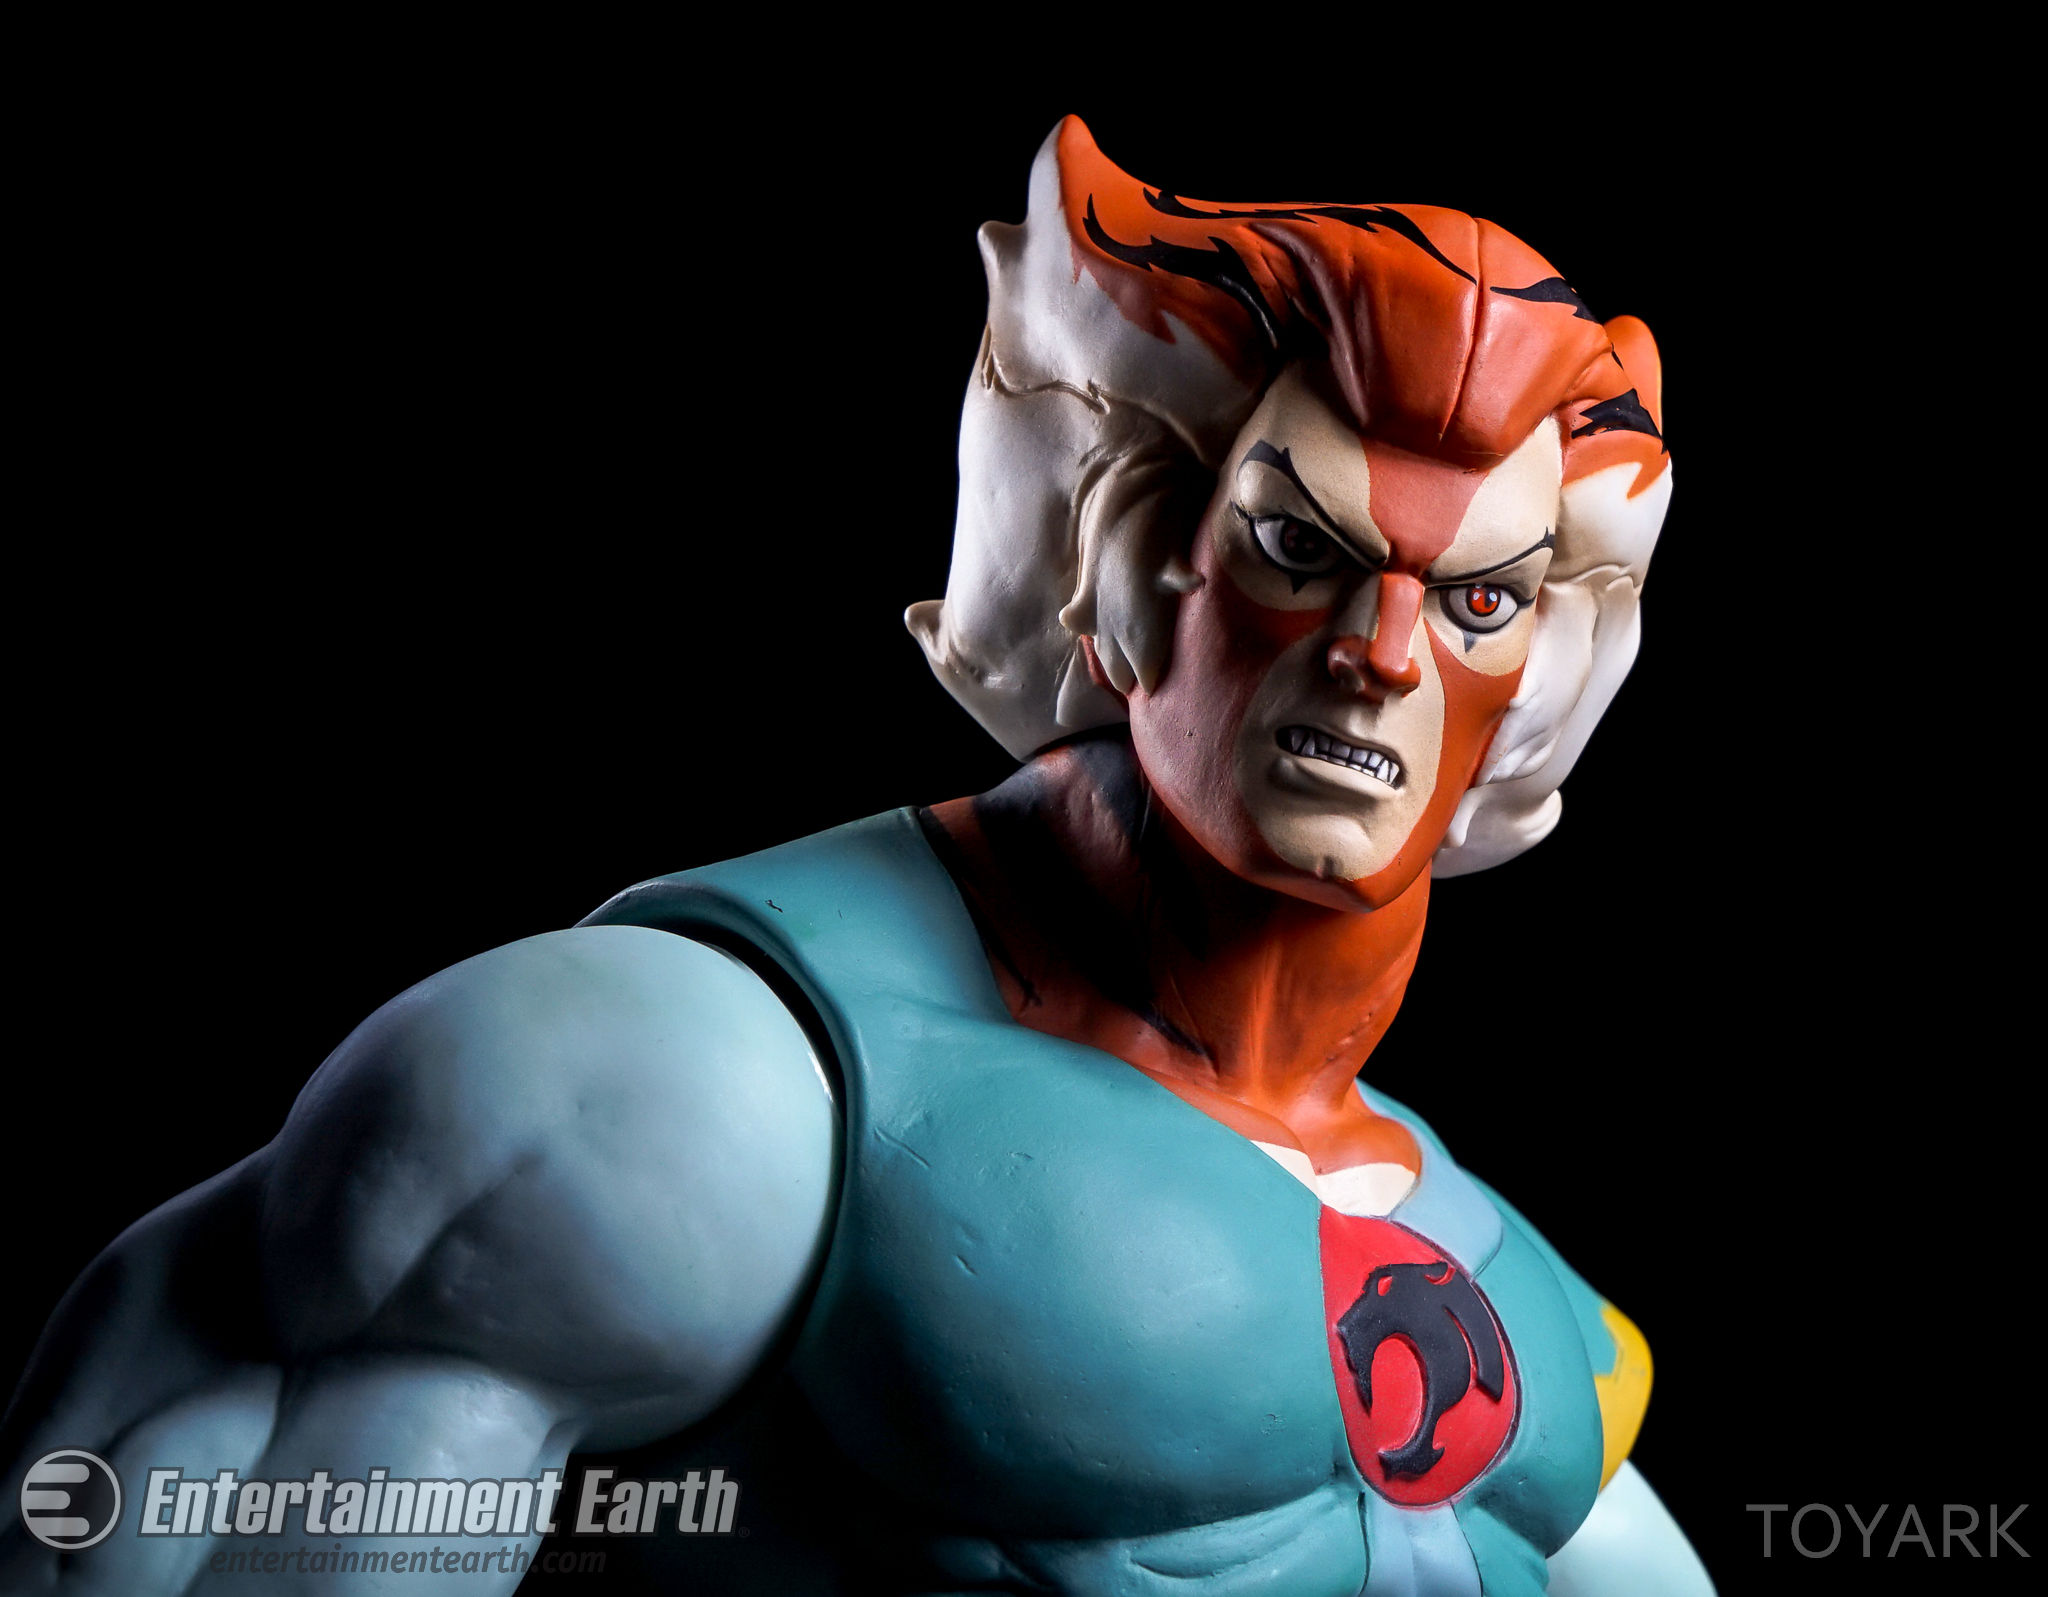 http://news.toyark.com/wp-content/uploads/sites/4/2016/05/Mezco-Thundercats-Tygra-030.jpg